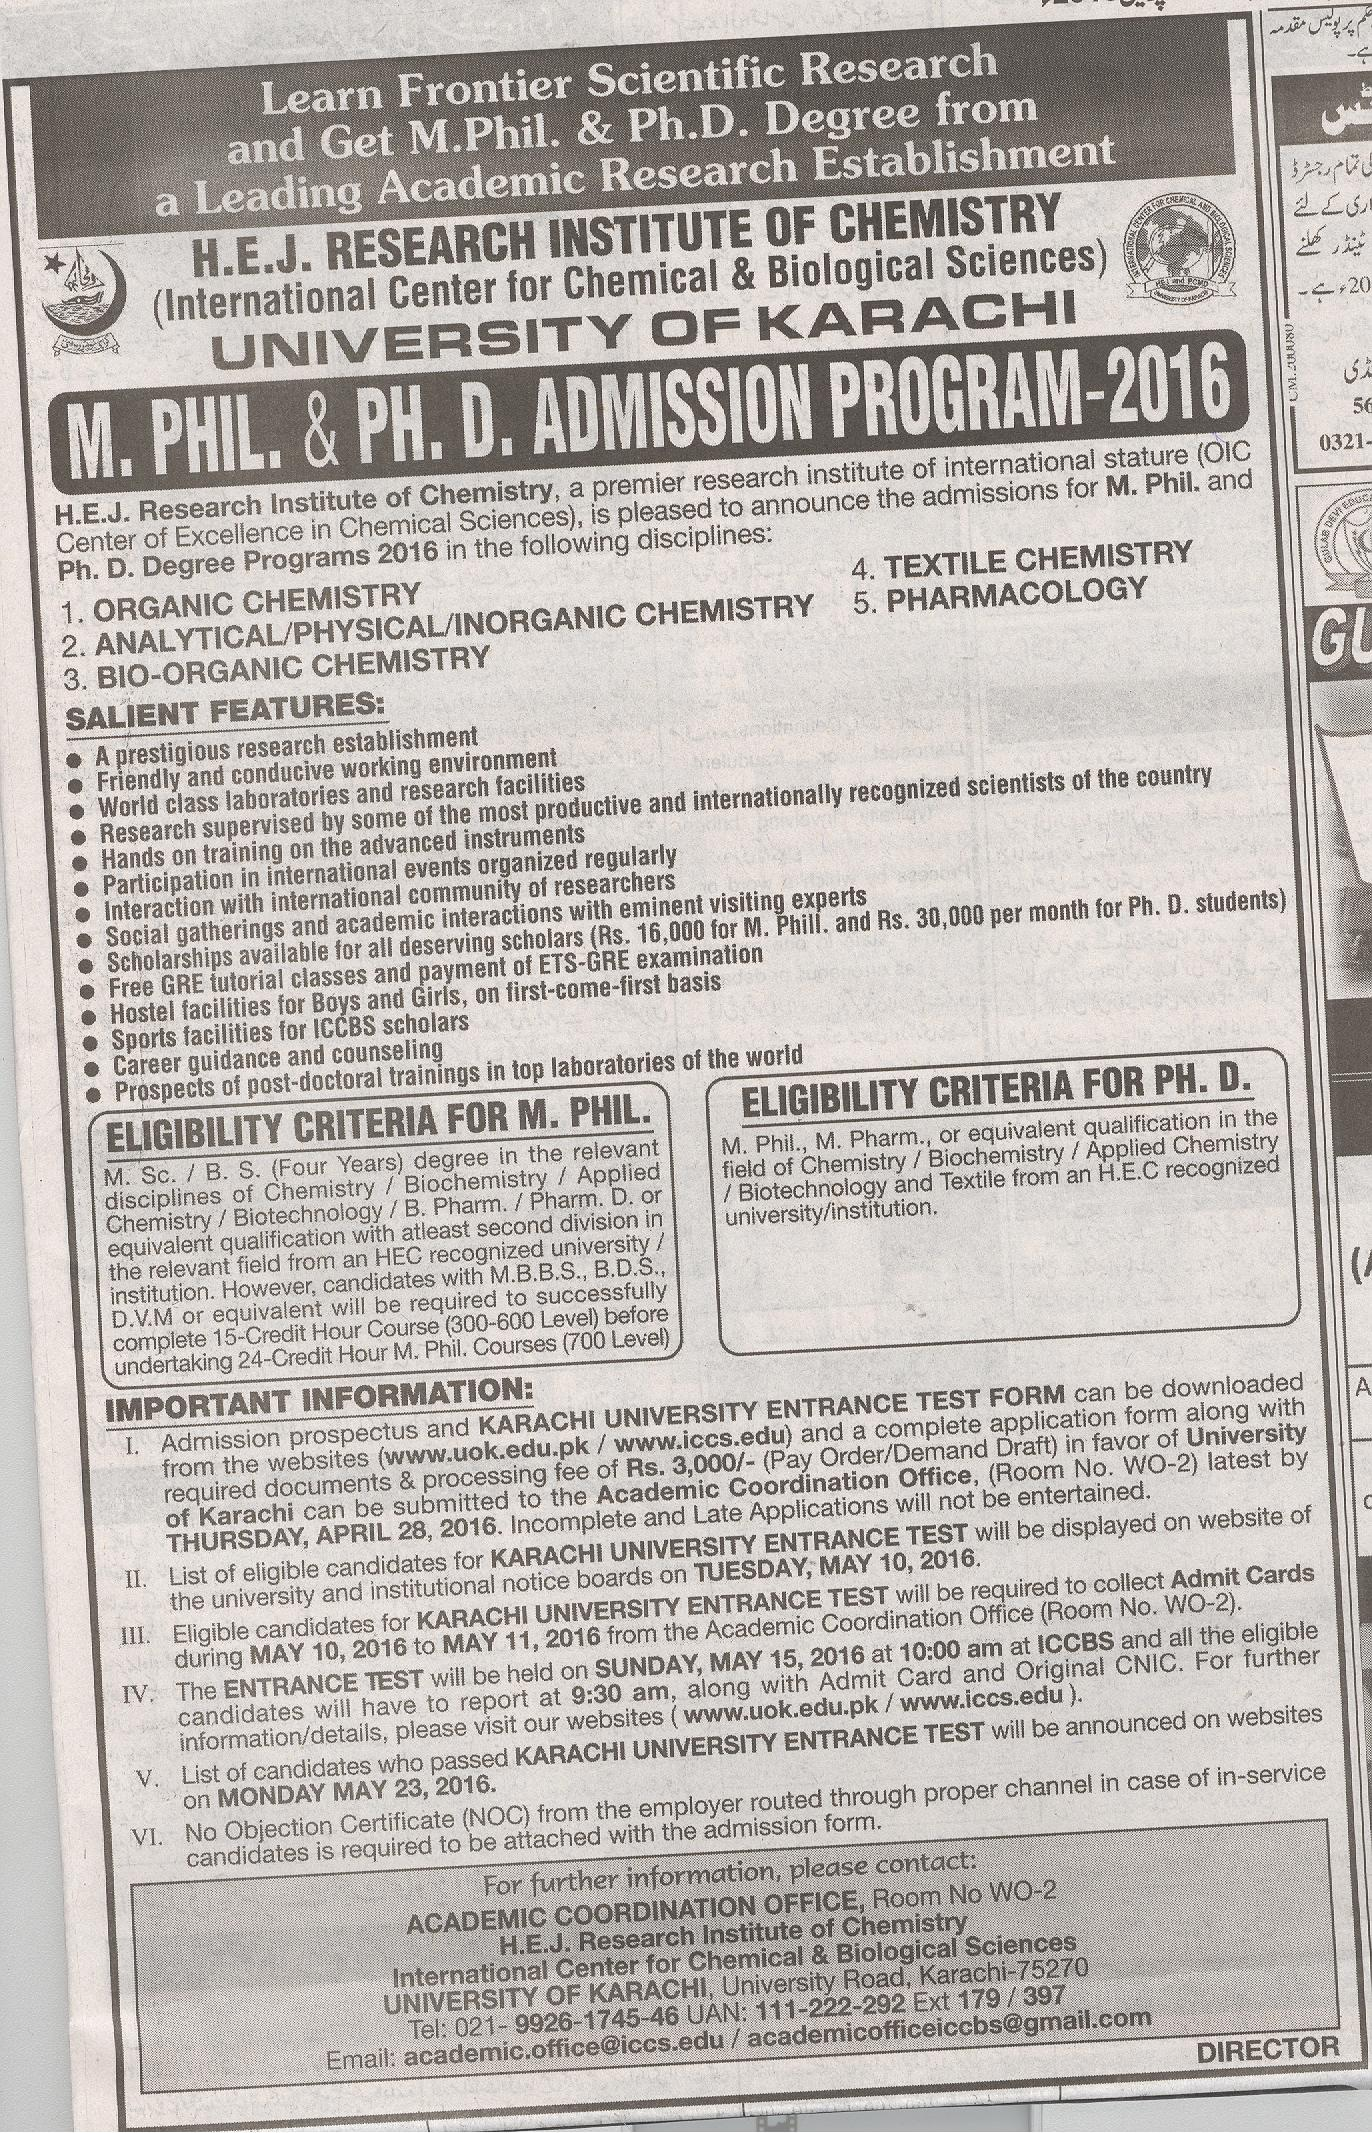 H E J Research Institute of Chemistry Admission 2016